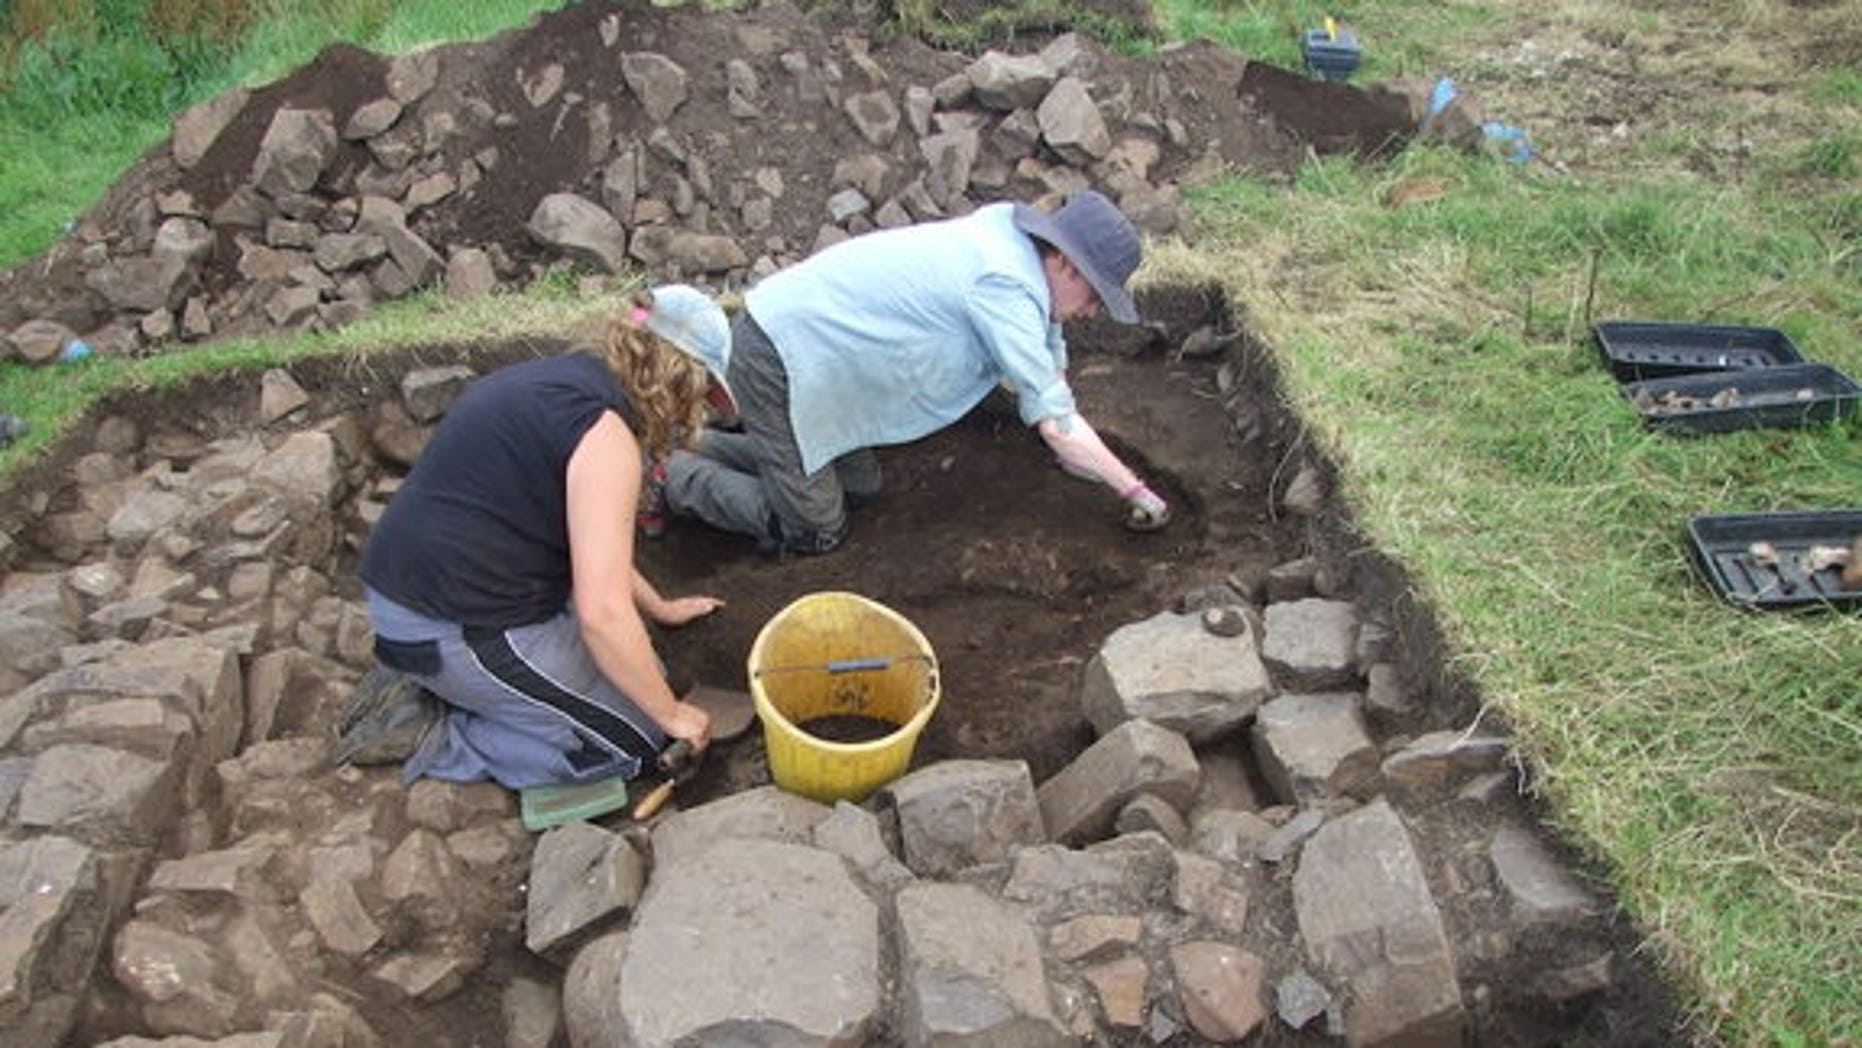 Archaeologists excavated a stone structure near Dunluce Castle along the coast of Northern Ireland. Experts already knew about a town that flourished in the 1600s, but they were unaware of the earlier settlement, which dates back to the late 14